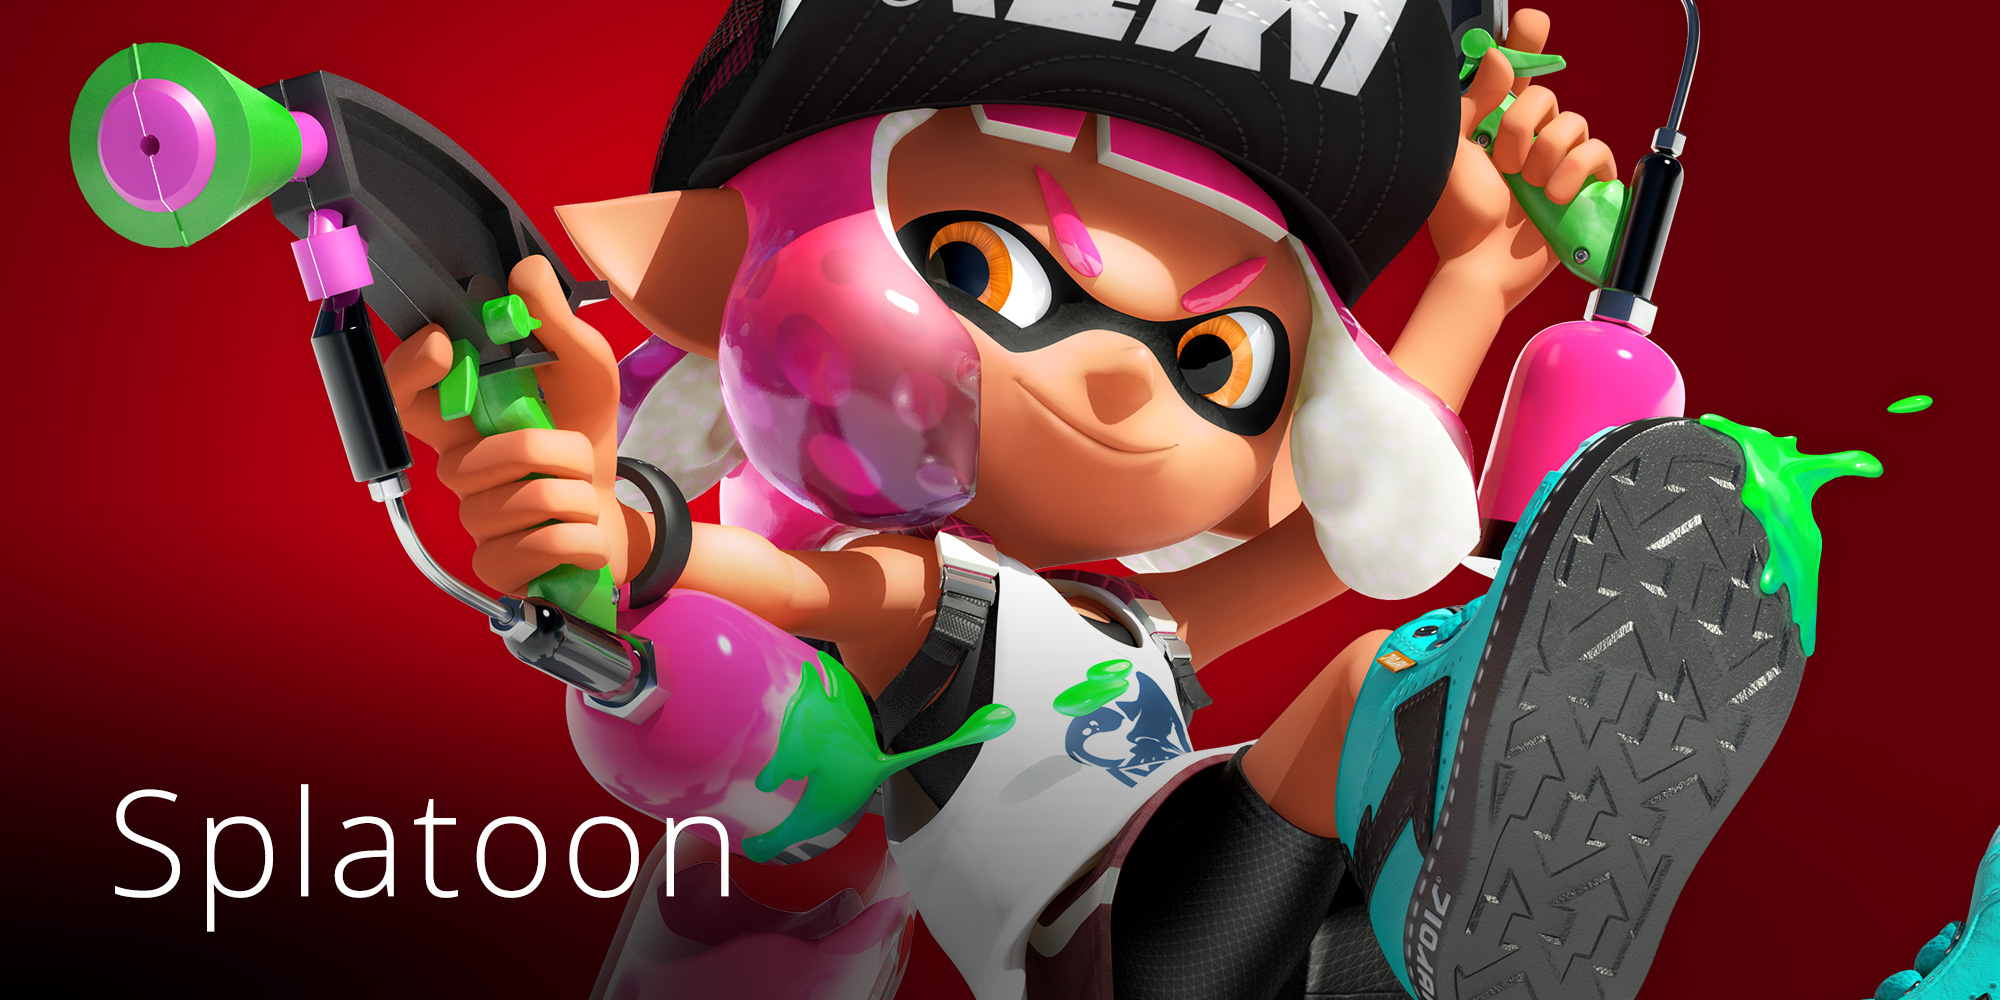 Splatoon-Produkte